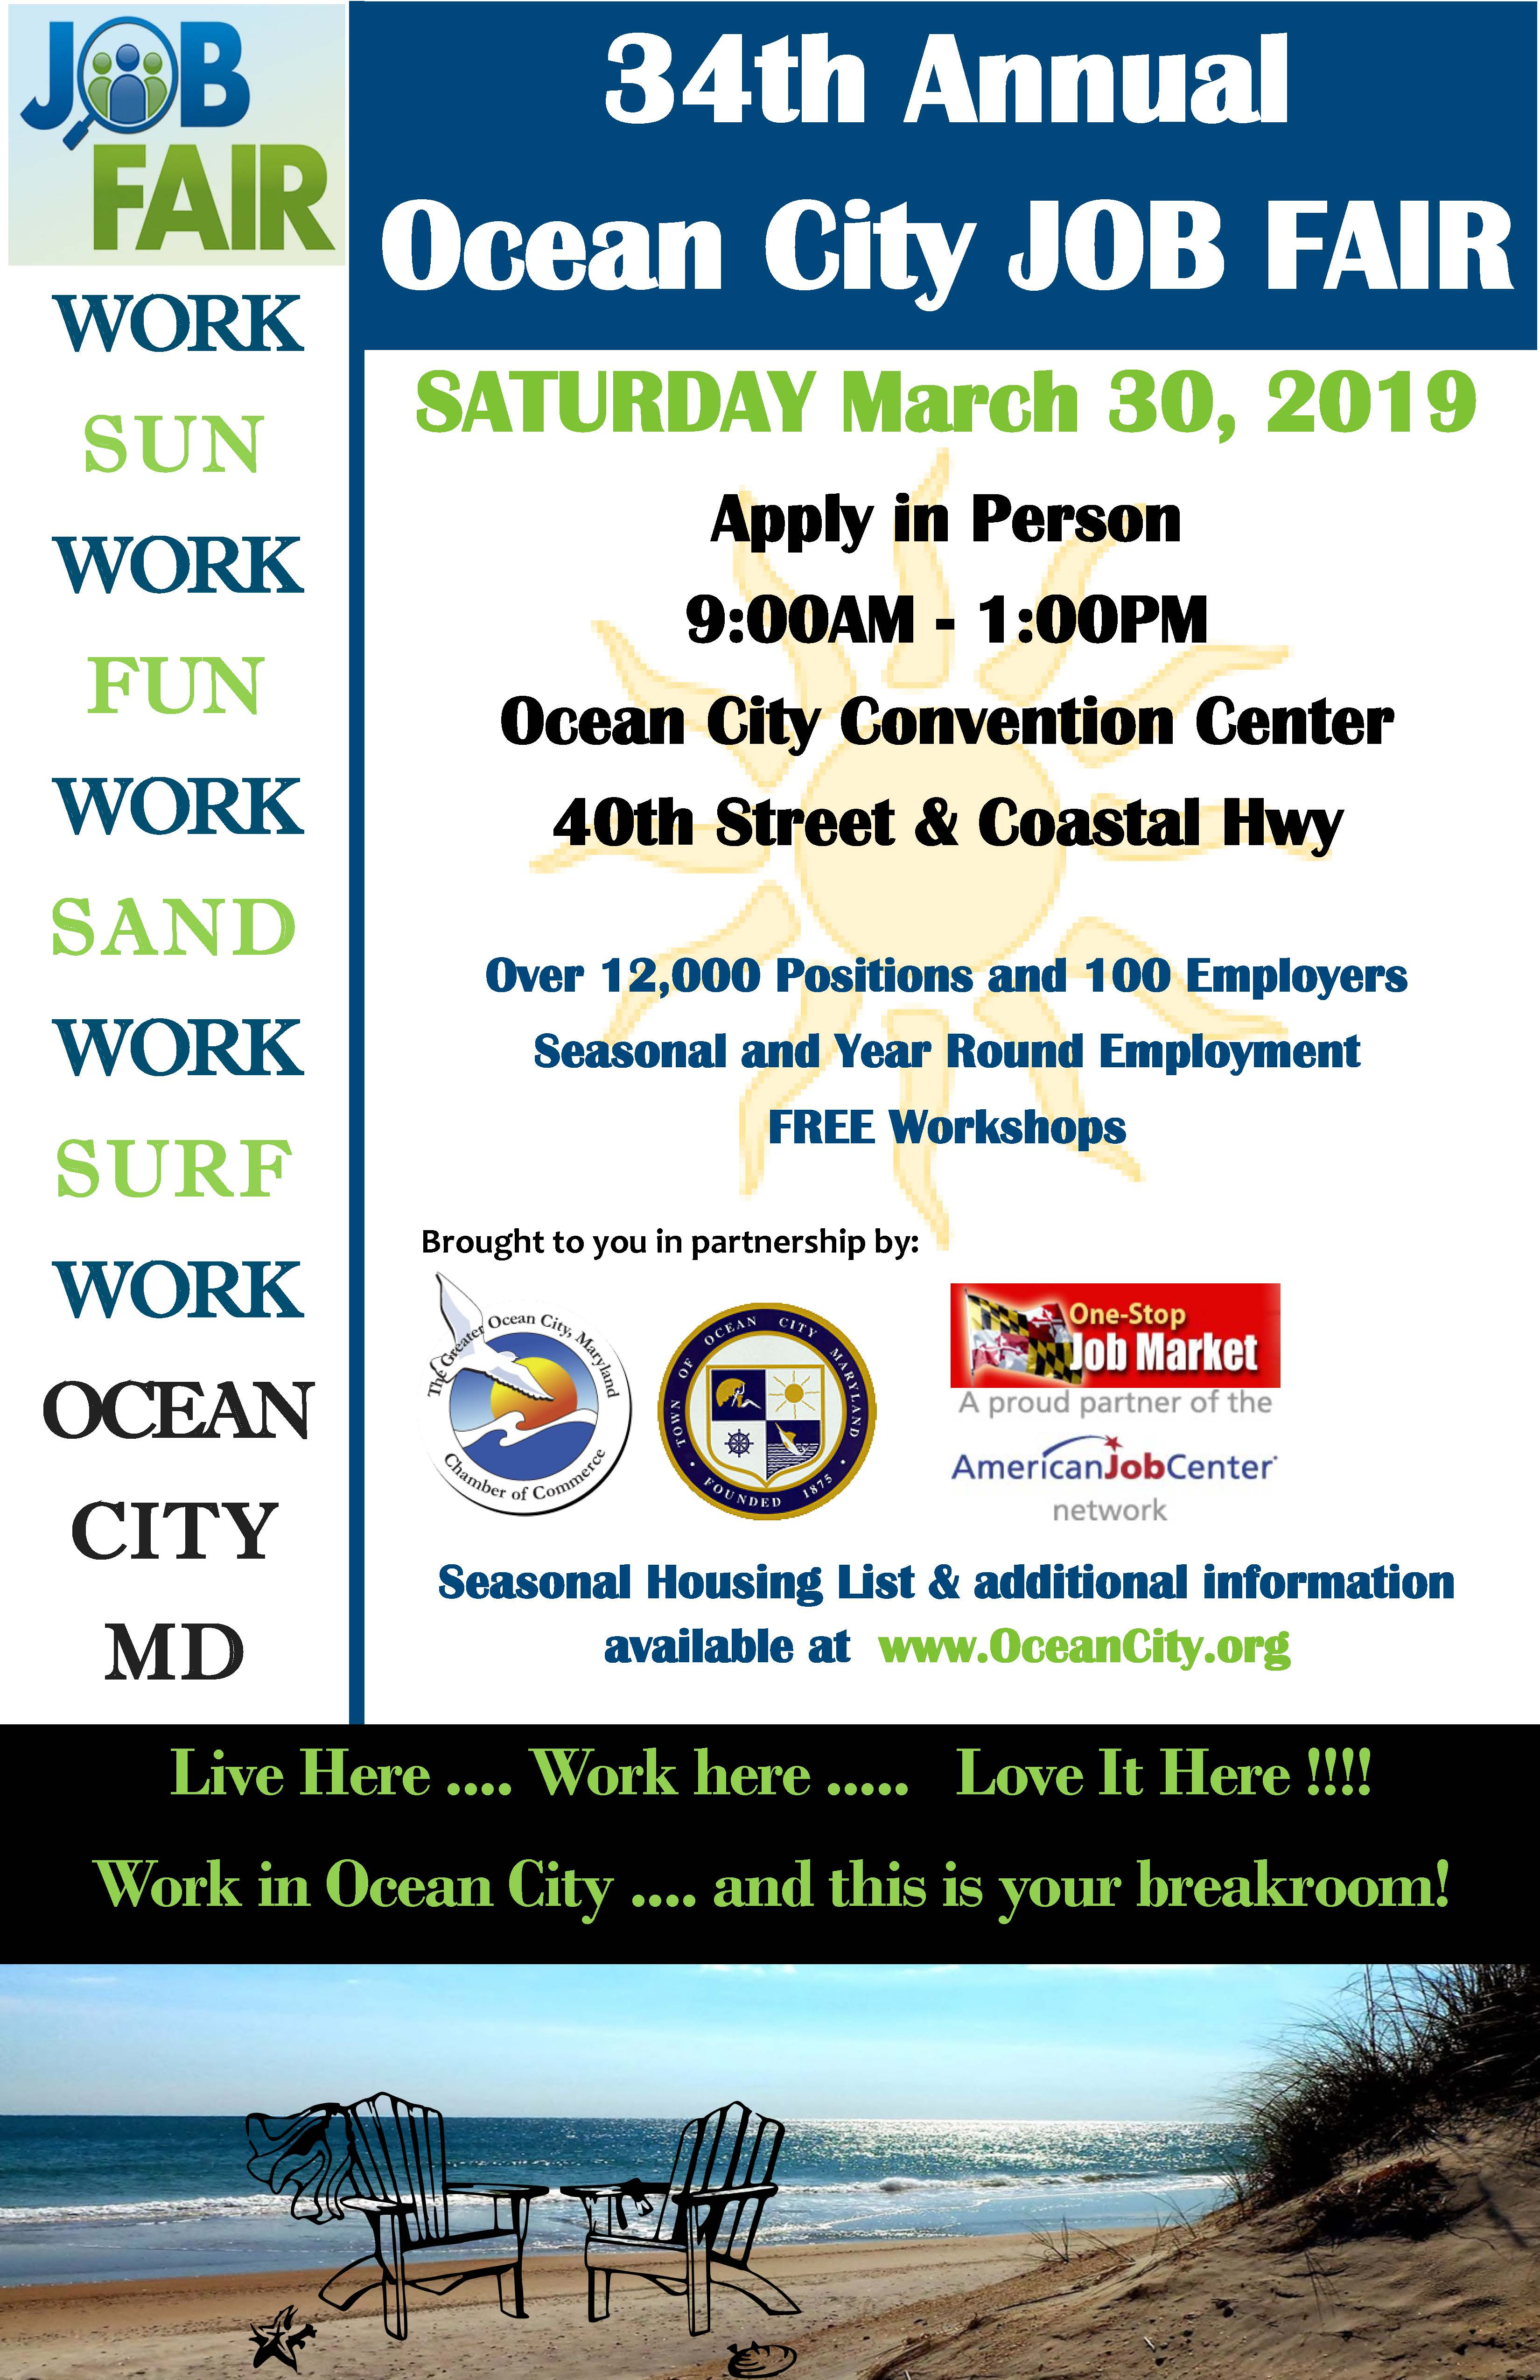 Ocean City Job Fair Set For Saturday